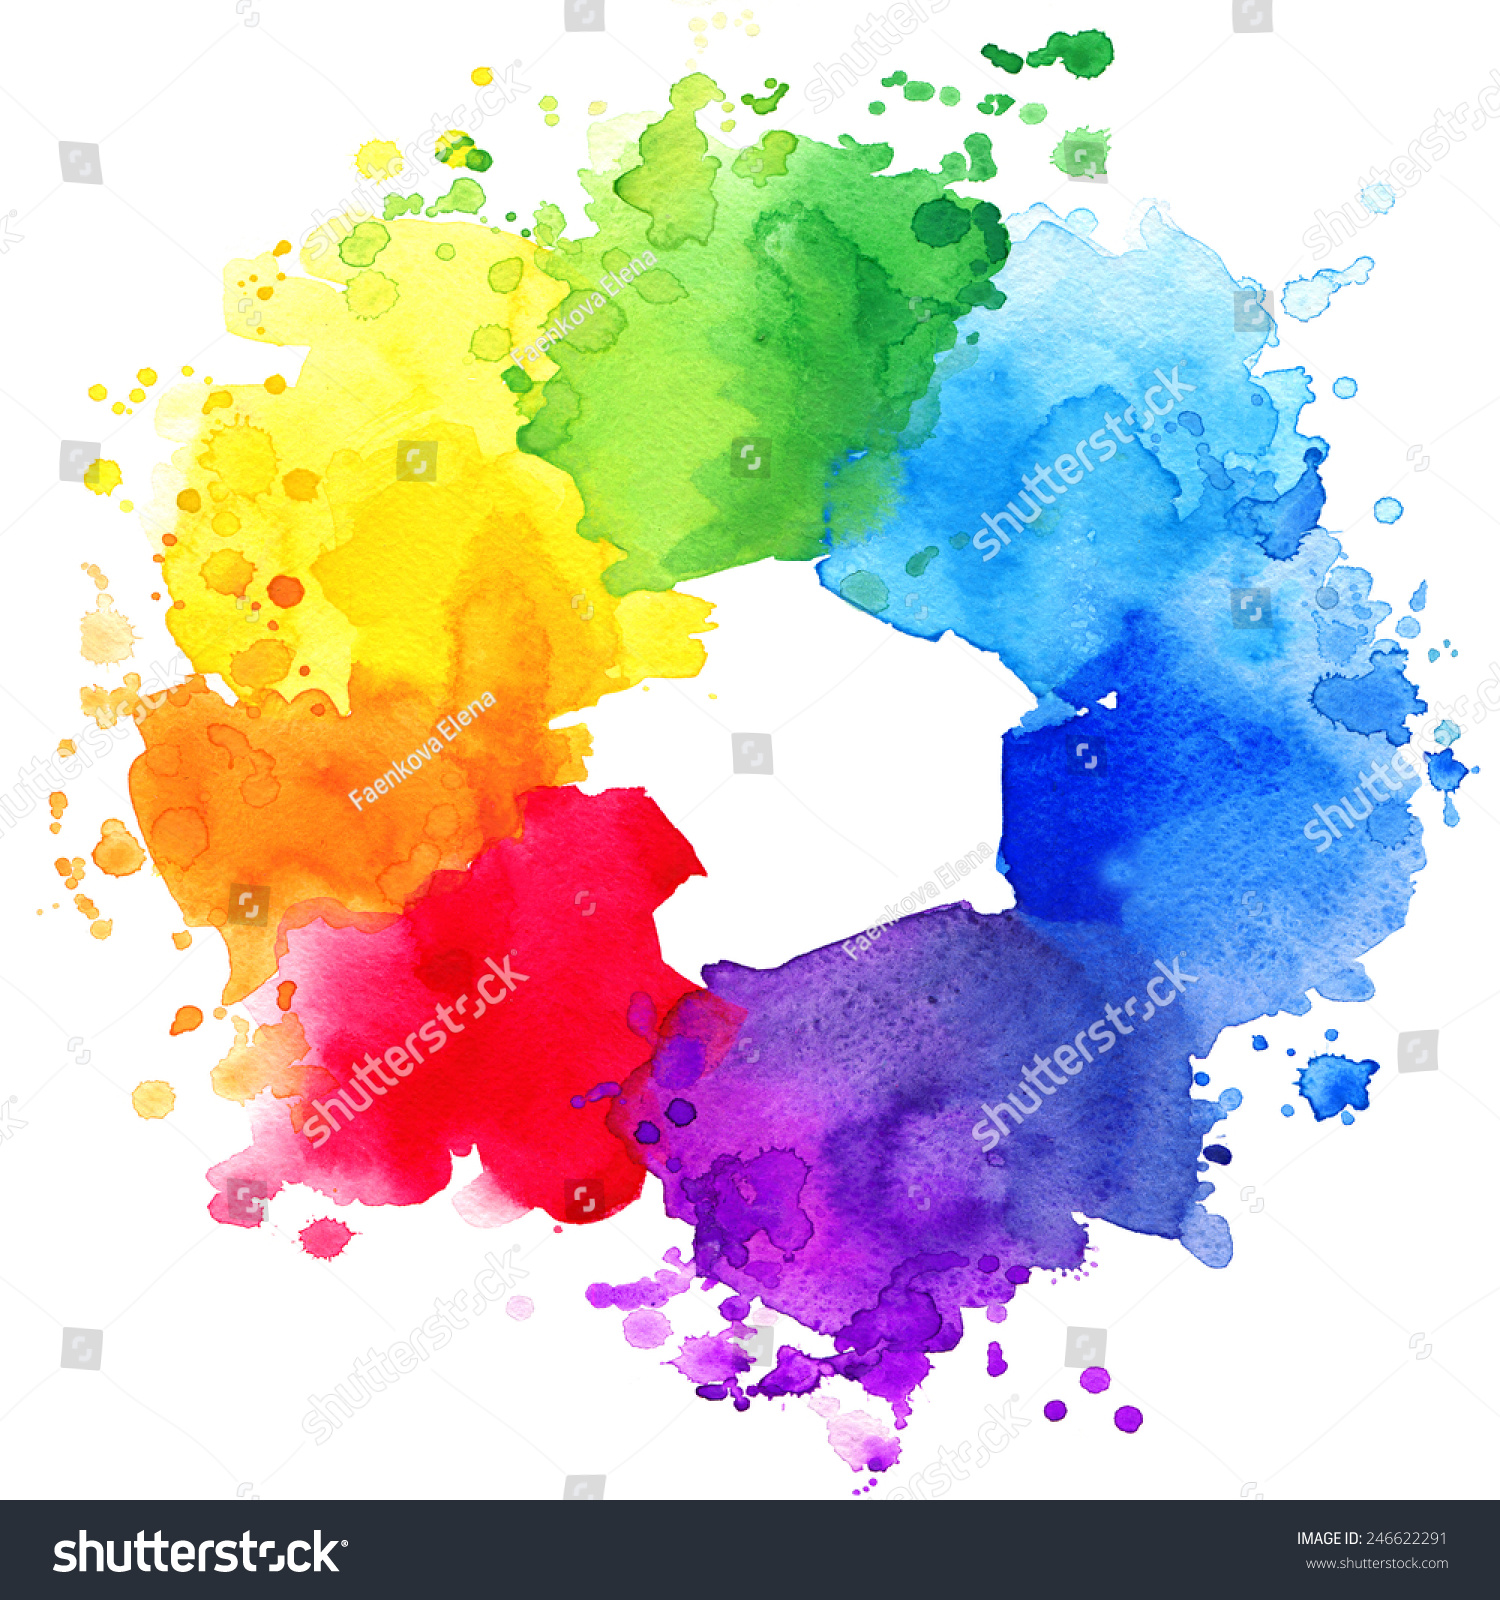 Abstract Colorful Splash Background Watercolor Background ...  Colorful Watercolor Splash